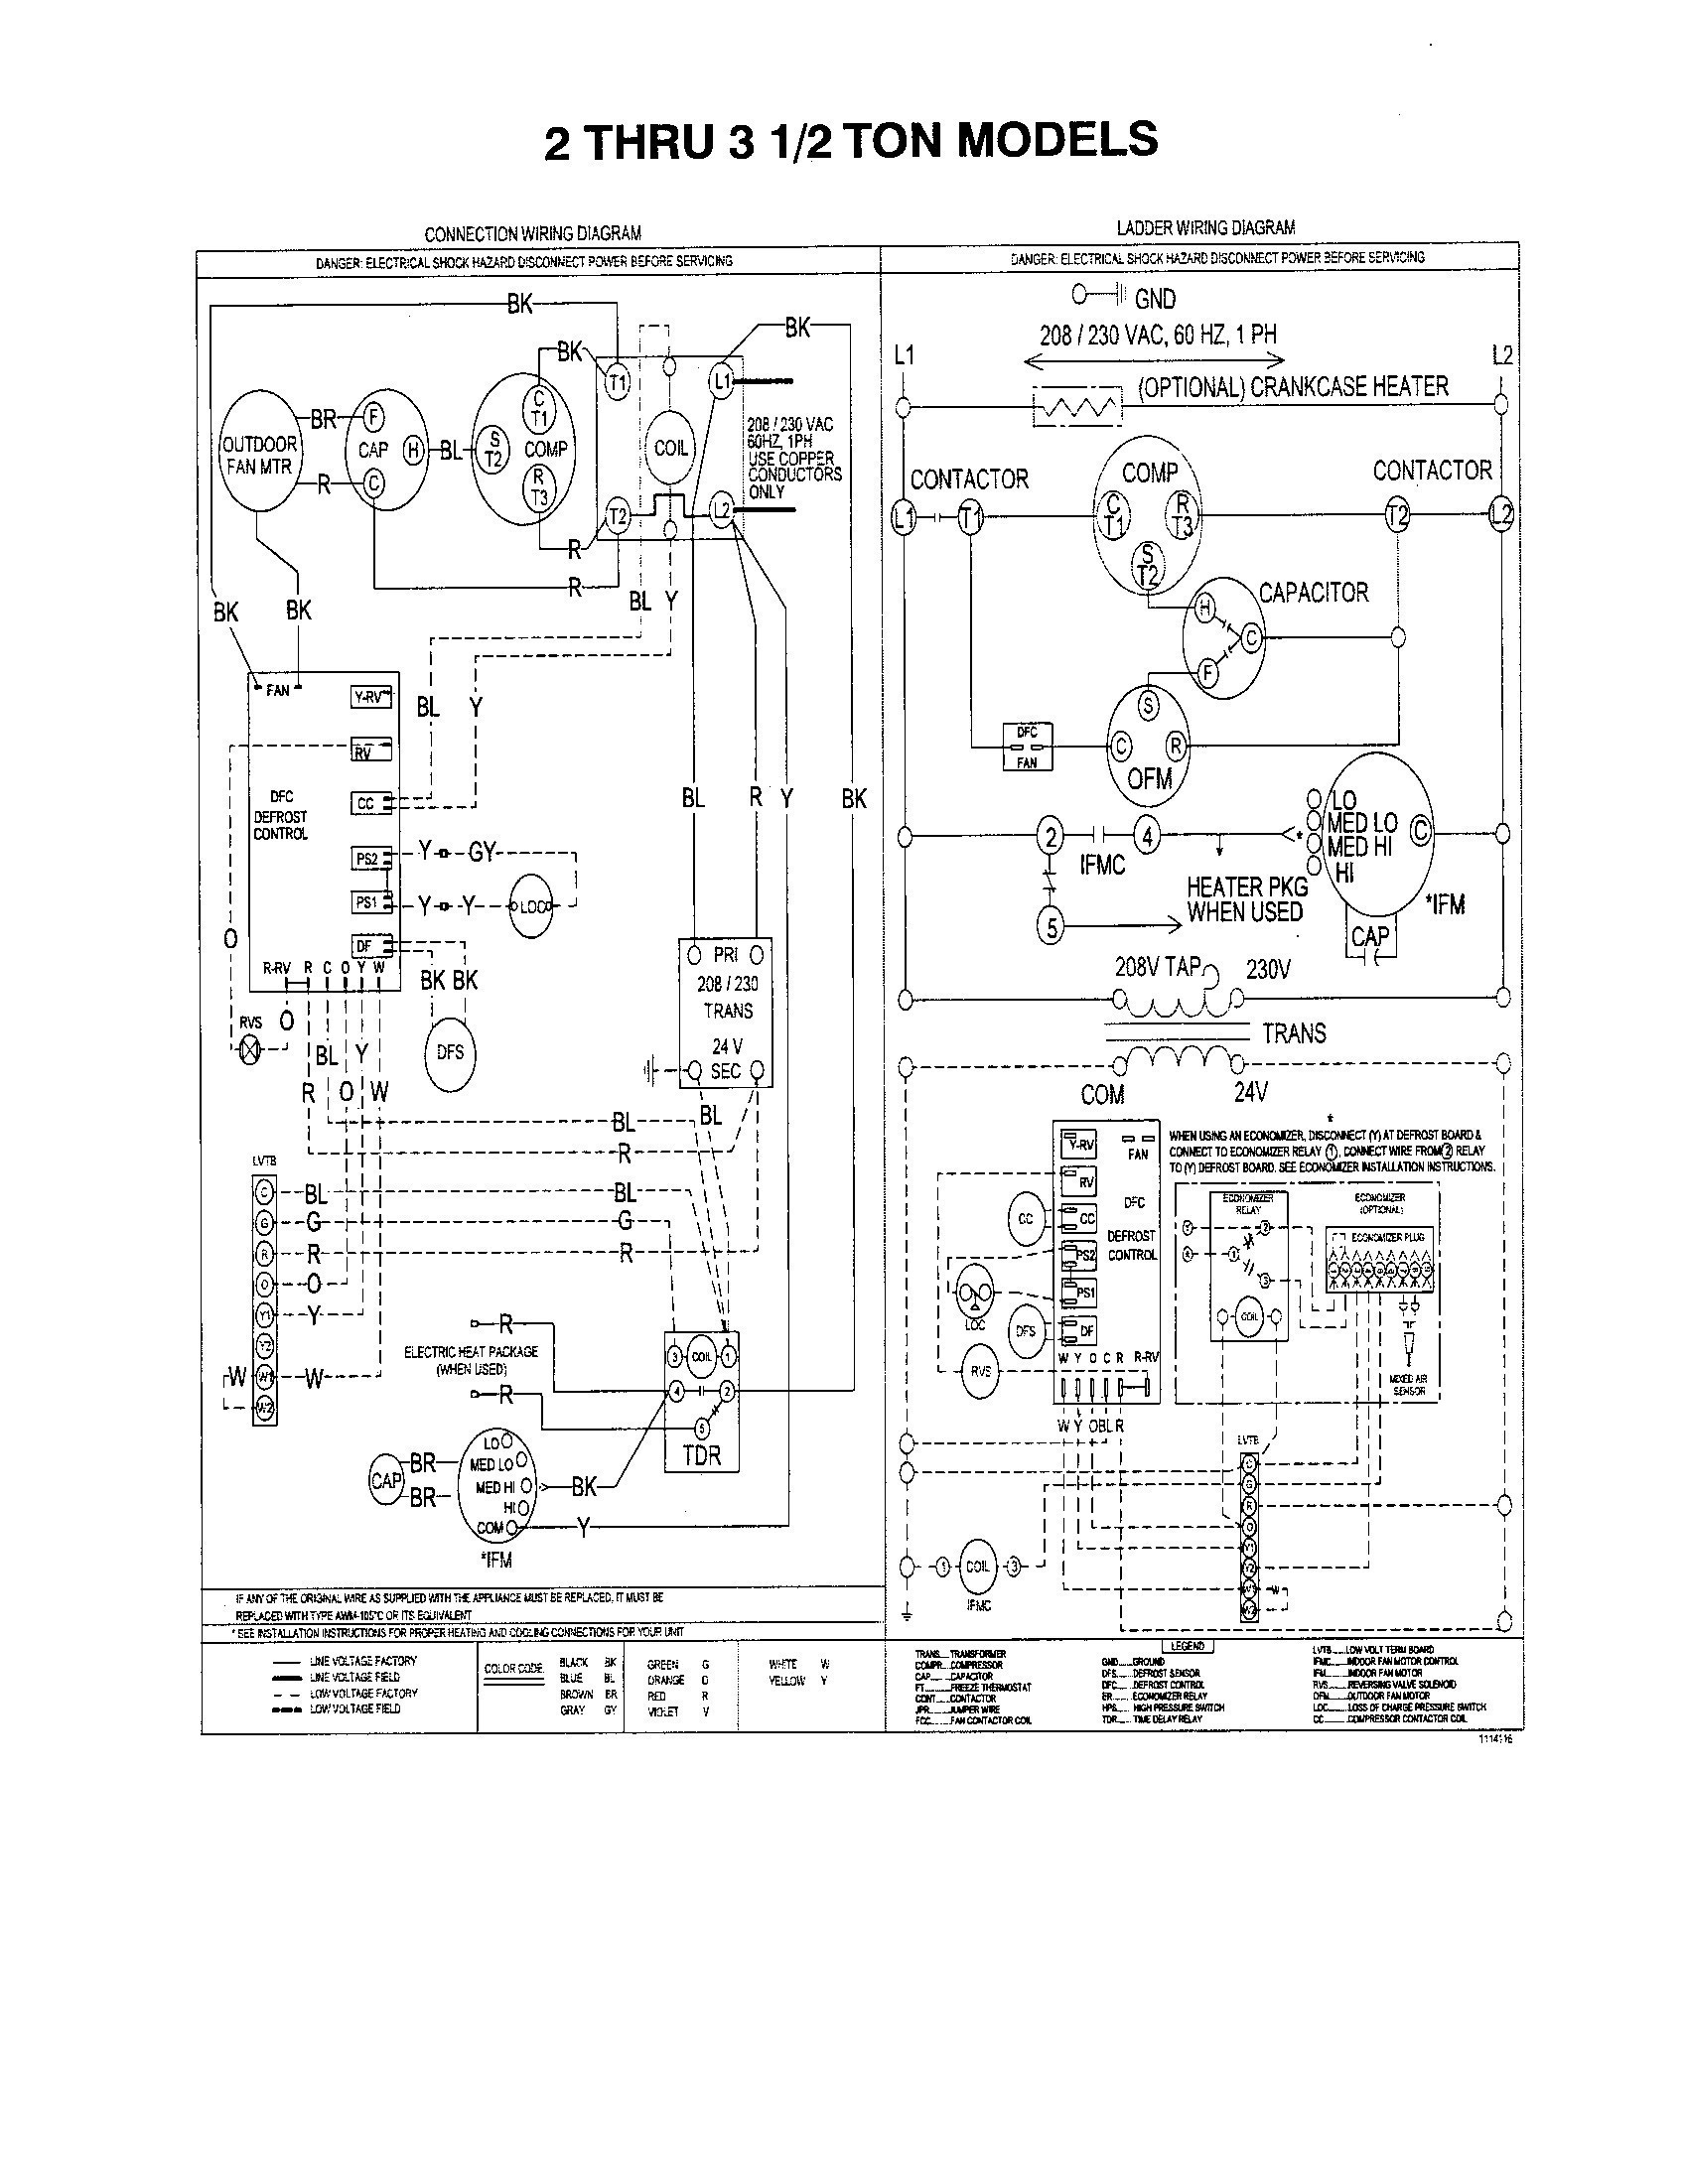 A C Condenser Unit Wiring Diagram